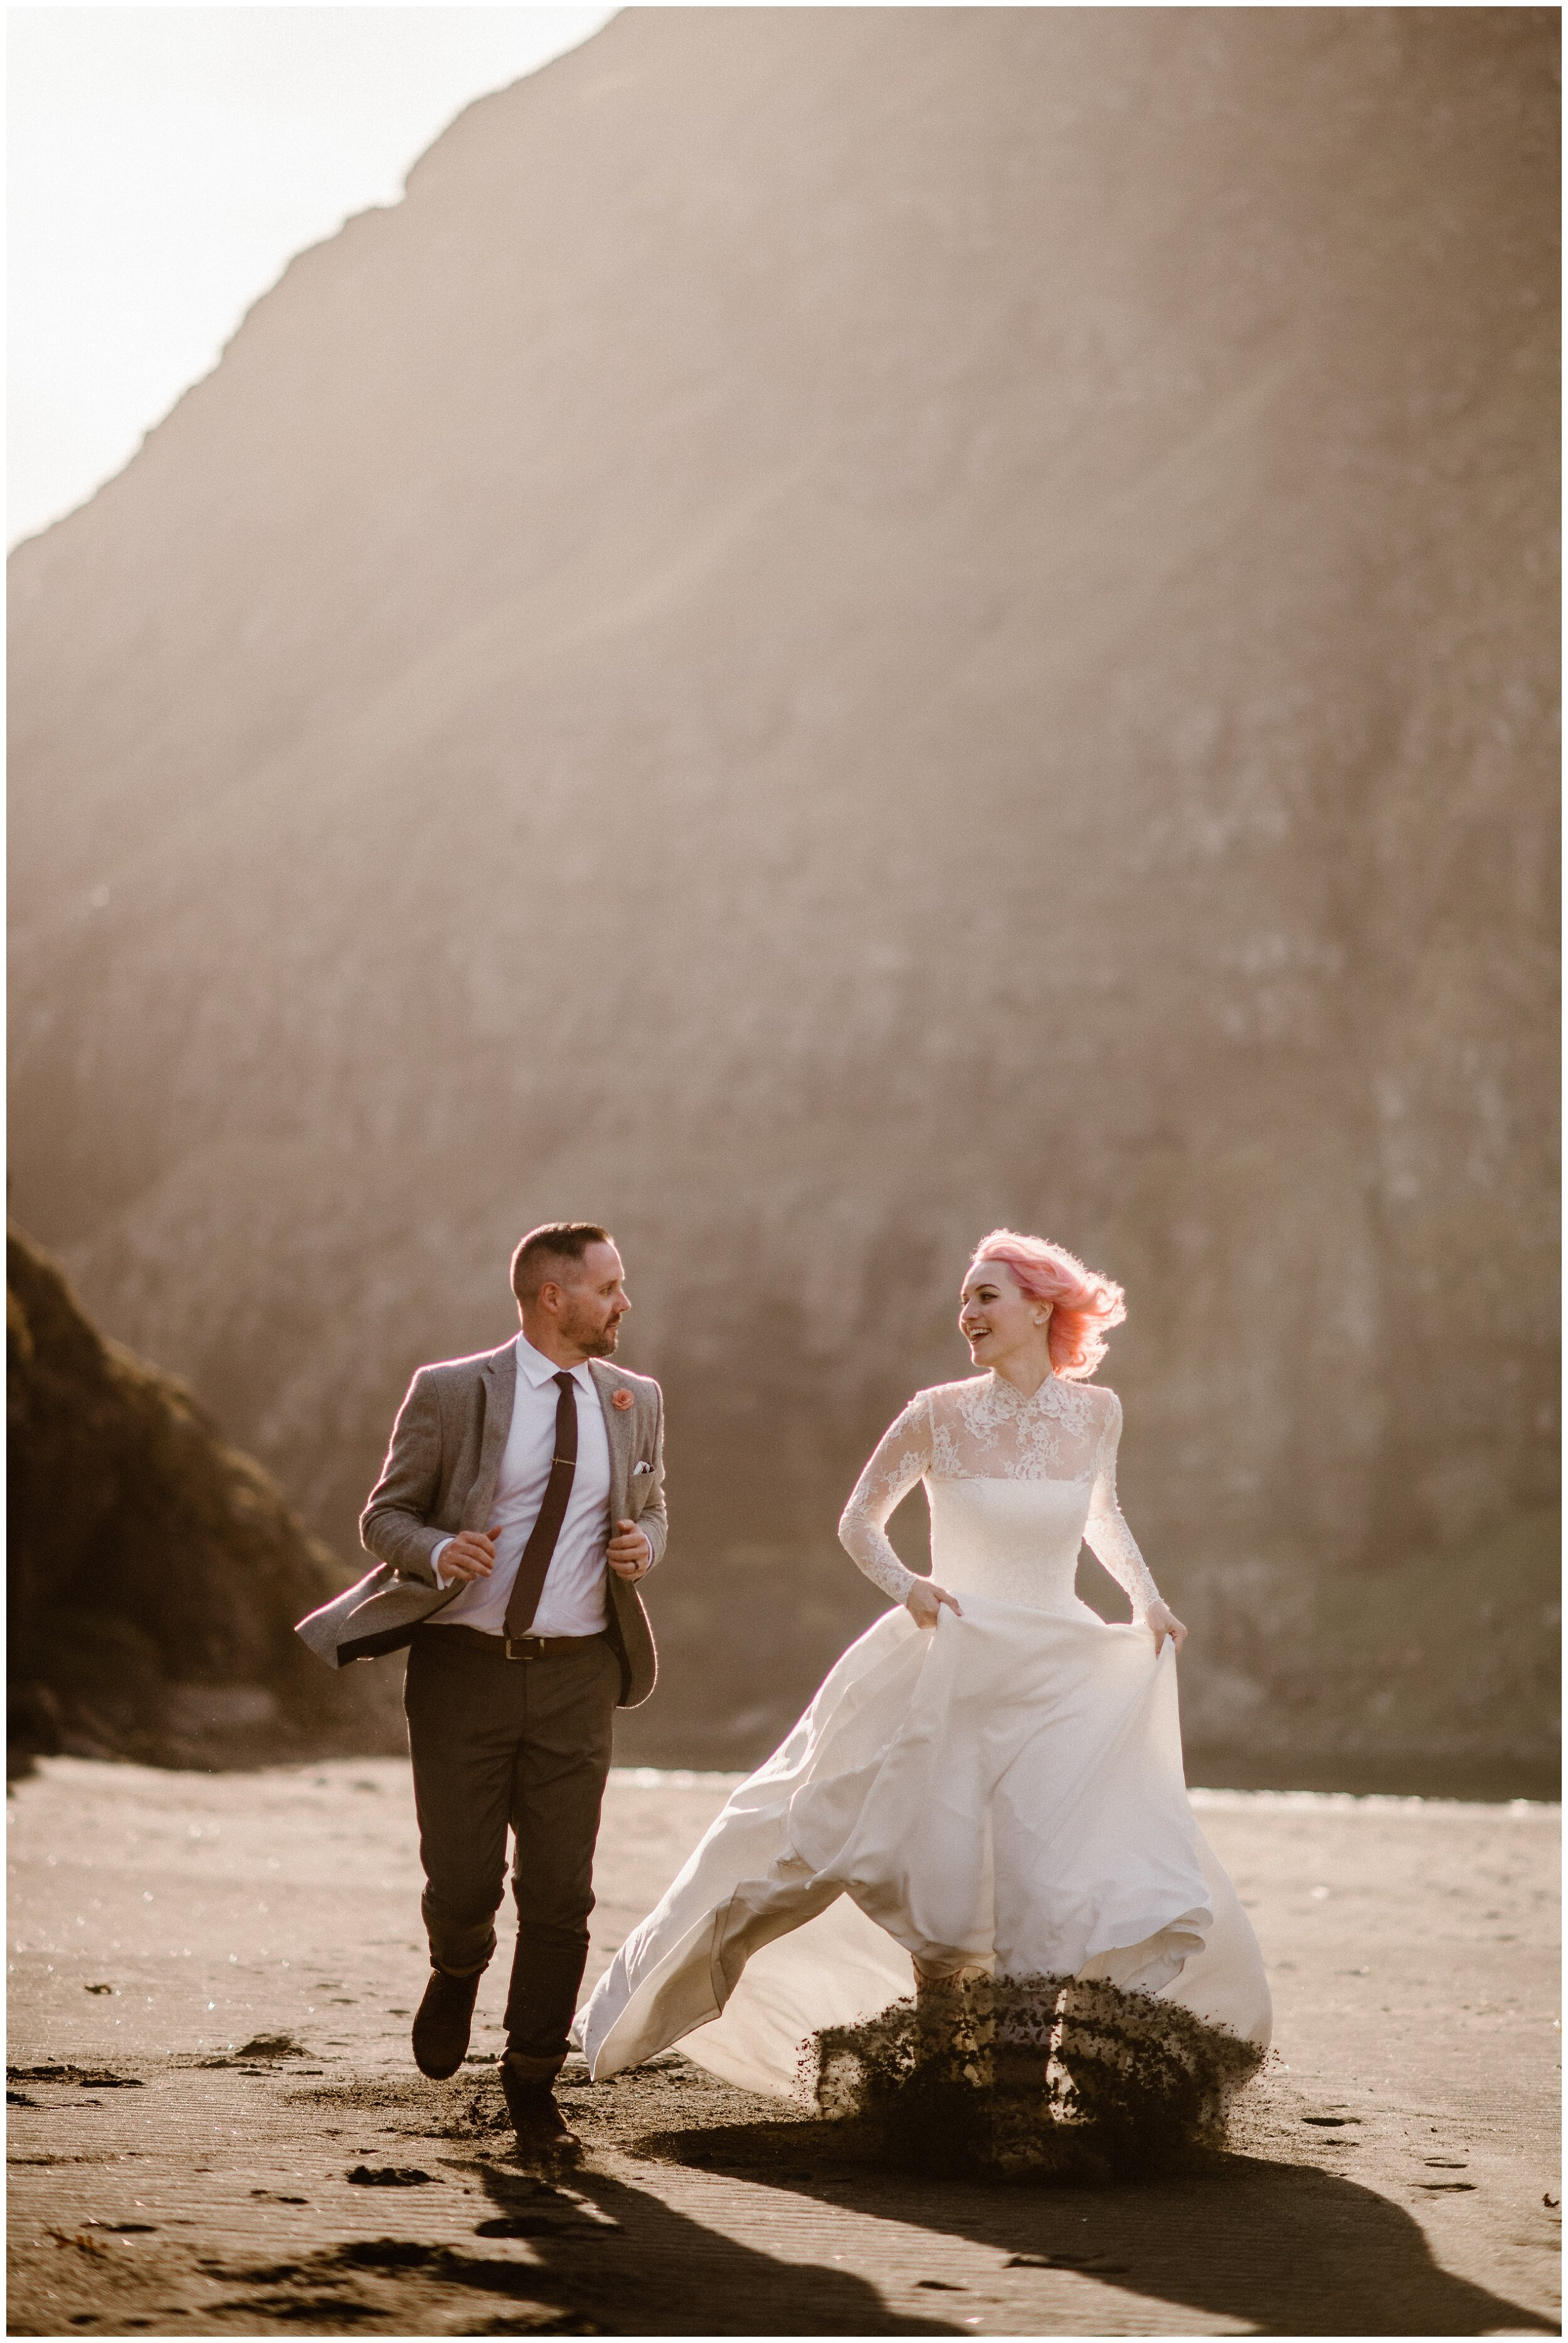 Elaura and Daryn run down a dark, sandy beach , staring at each other and smiling. Elaura's pink boots kick up a spray of dark sand, contrasting with her beautiful pastel pink hair. These adventure elopement photos were captured by Adventure Instead, and elopement wedding photographer.